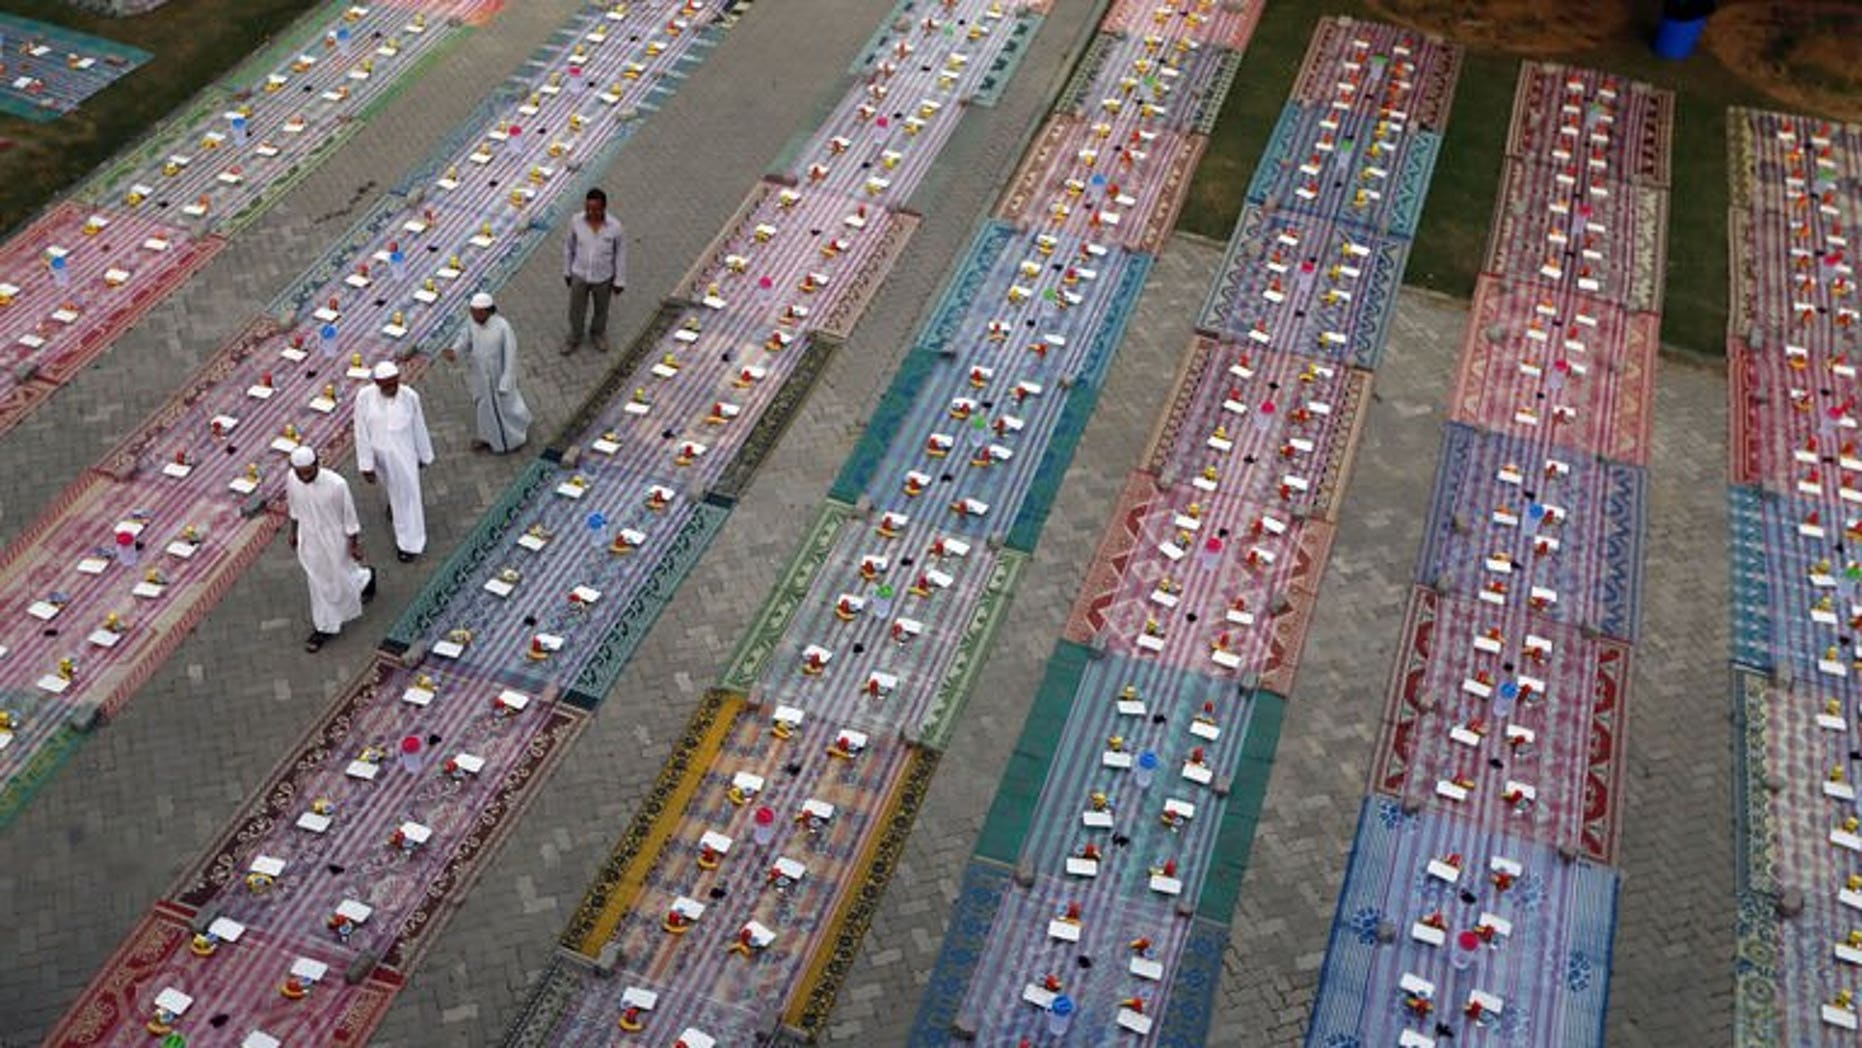 Free Iftar meals are laid out for Muslim workers to break their fast during Ramadan in Dubai, on July 15, 2013. Shedding weight in Dubai is being rewarded in gold under a new initiative by the municipality of the Gulf emirate aimed at fighting obesity, local newspapers reported.